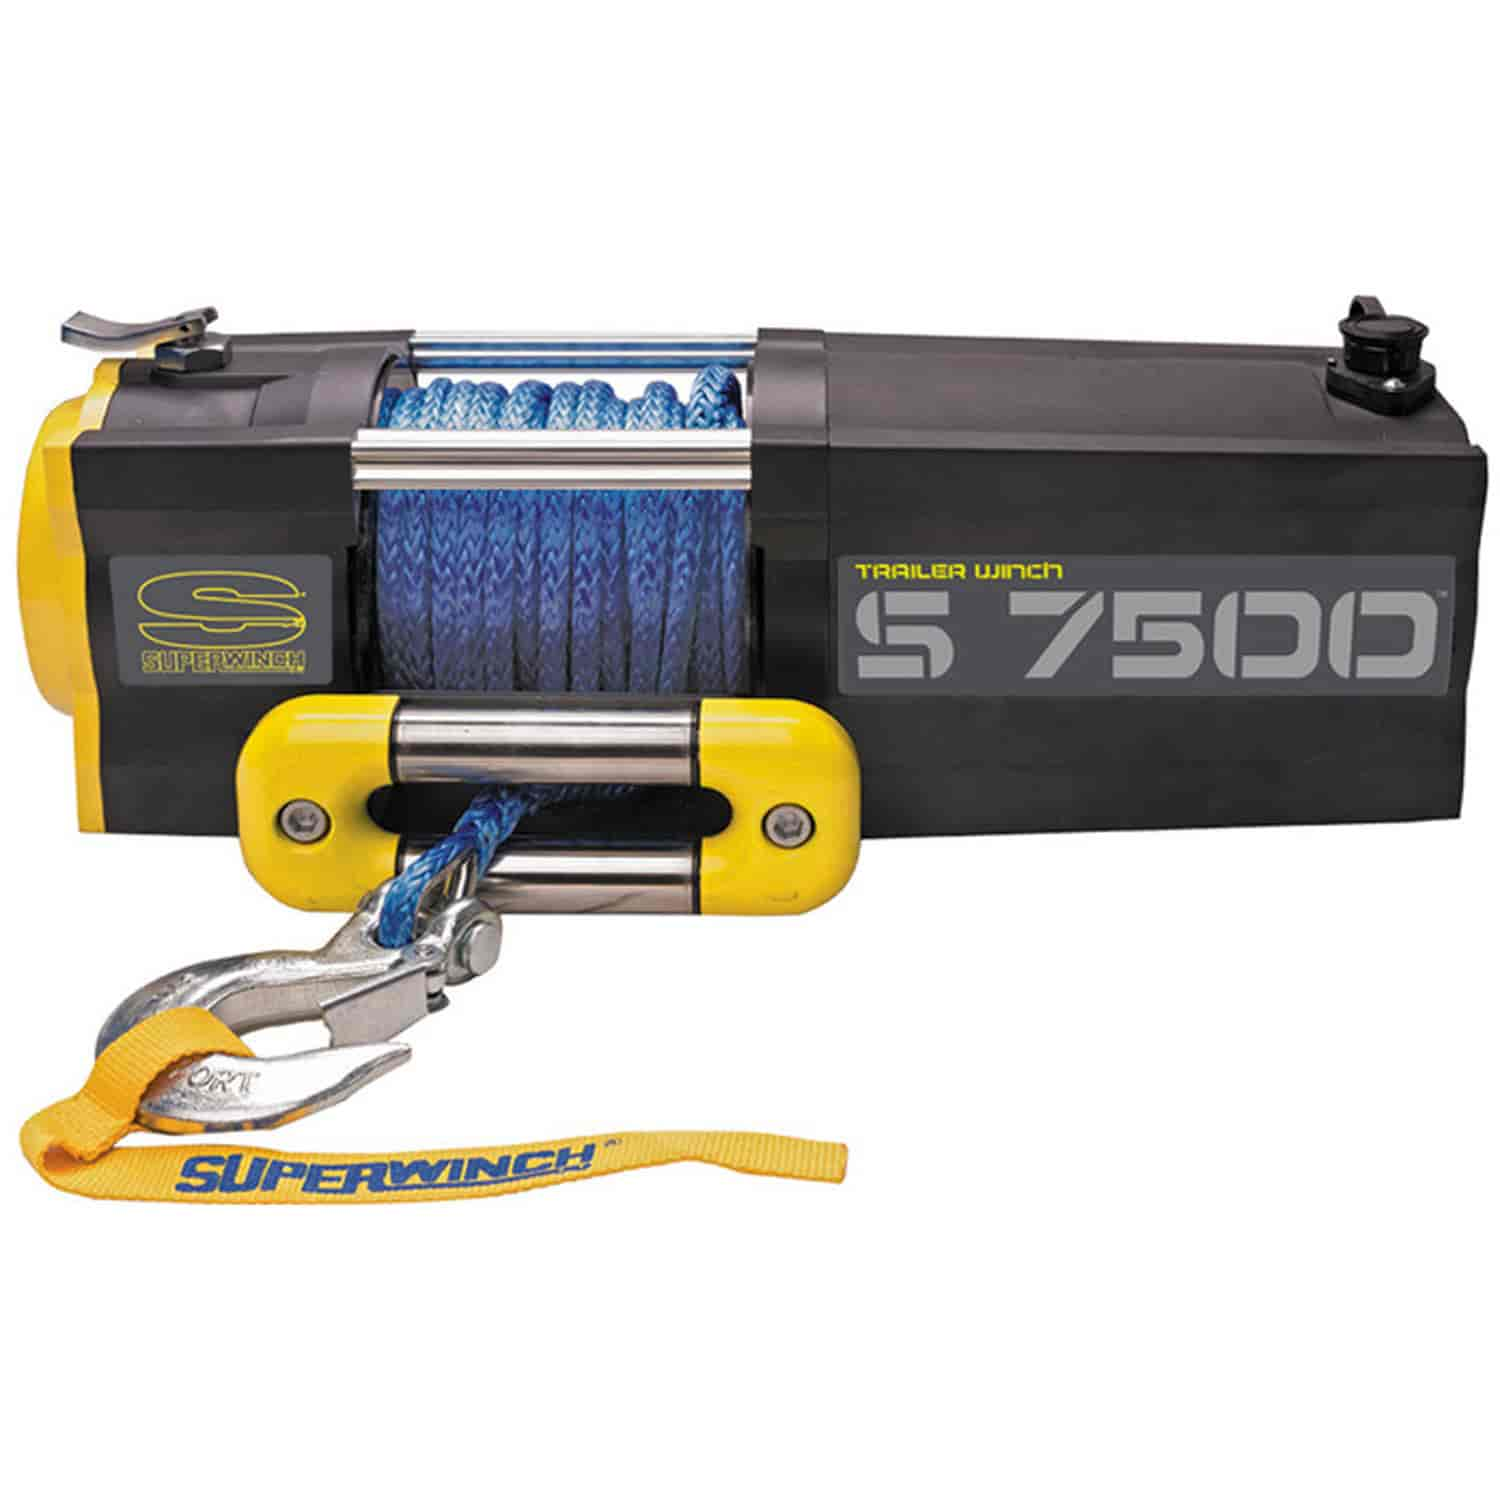 Superwinch 1475201